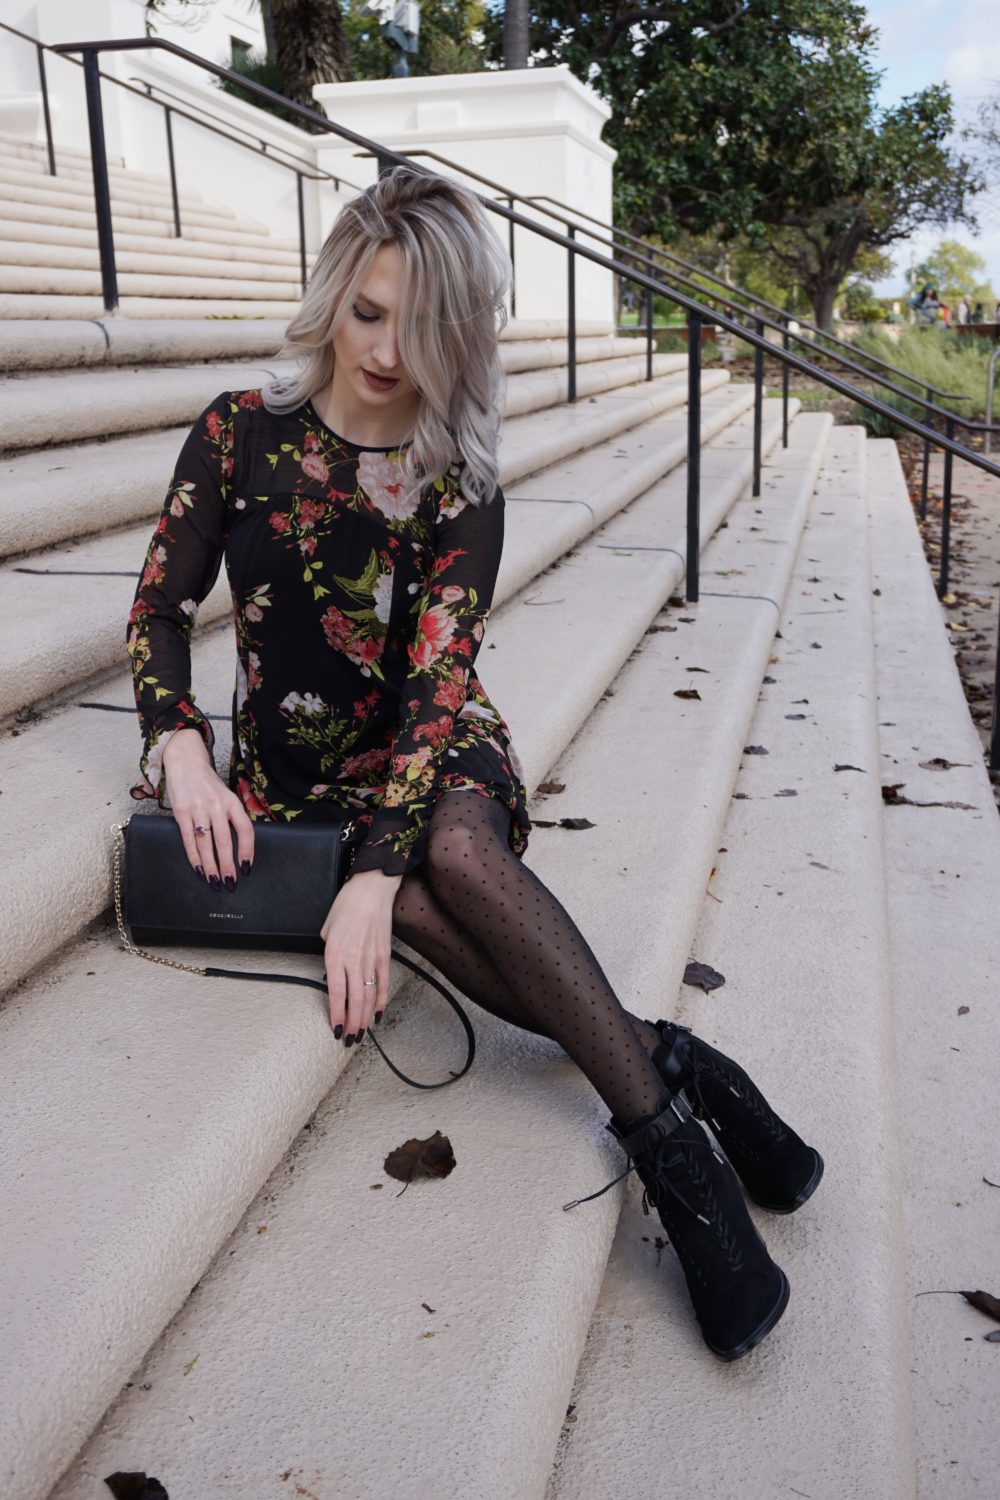 How to Wear Polka Dot Tights & Florals